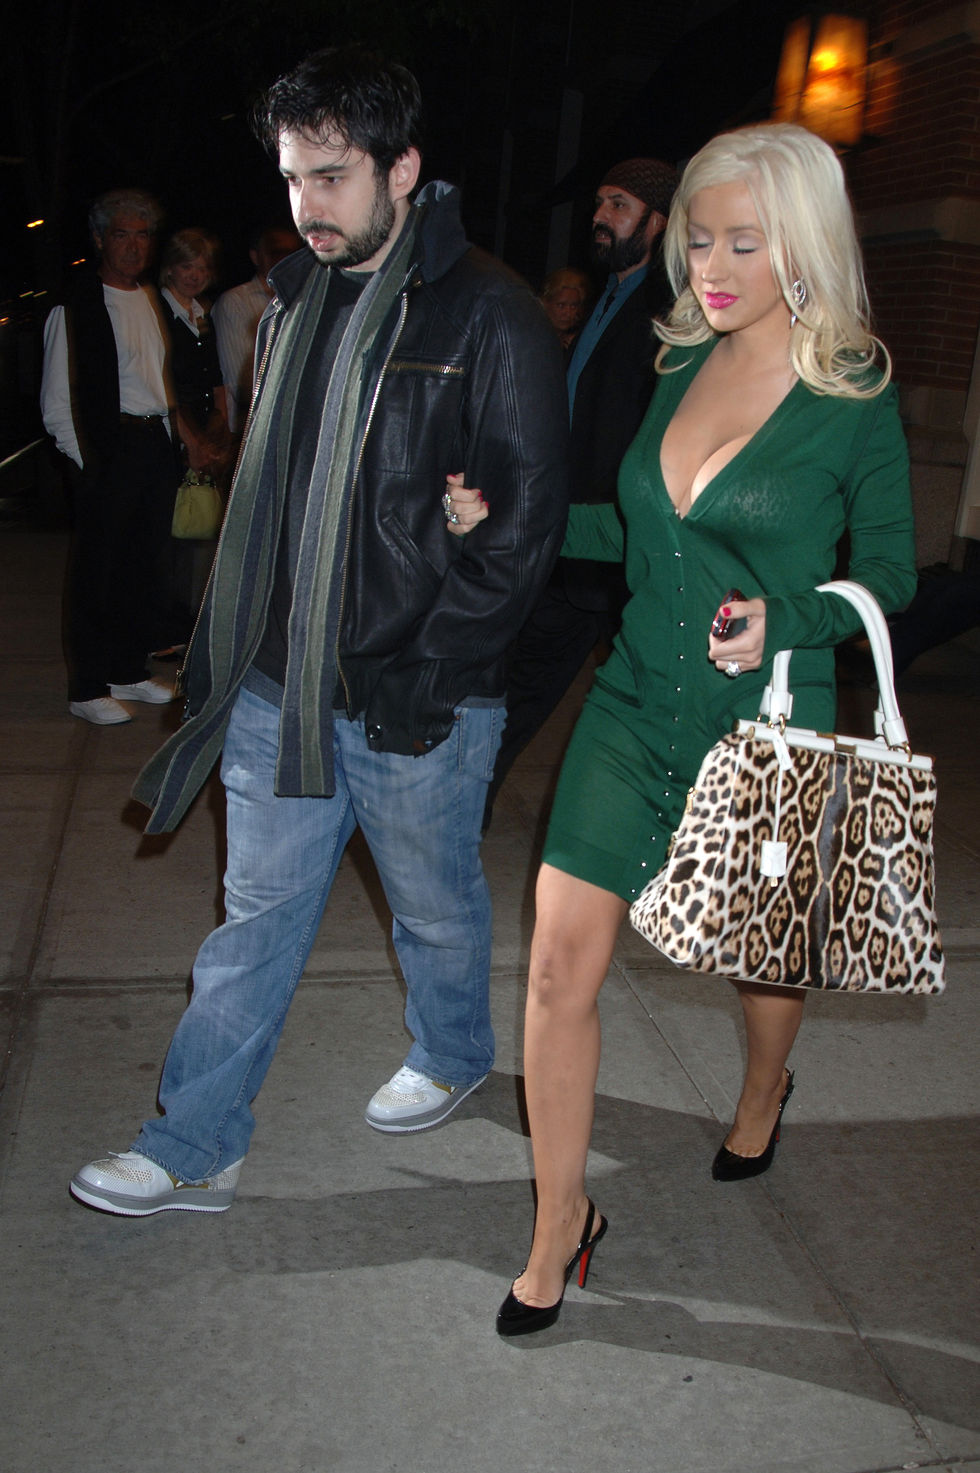 christina-aguilera-cleavage-candids-at-the-soho-grand-hotel-in-new-york-city-03